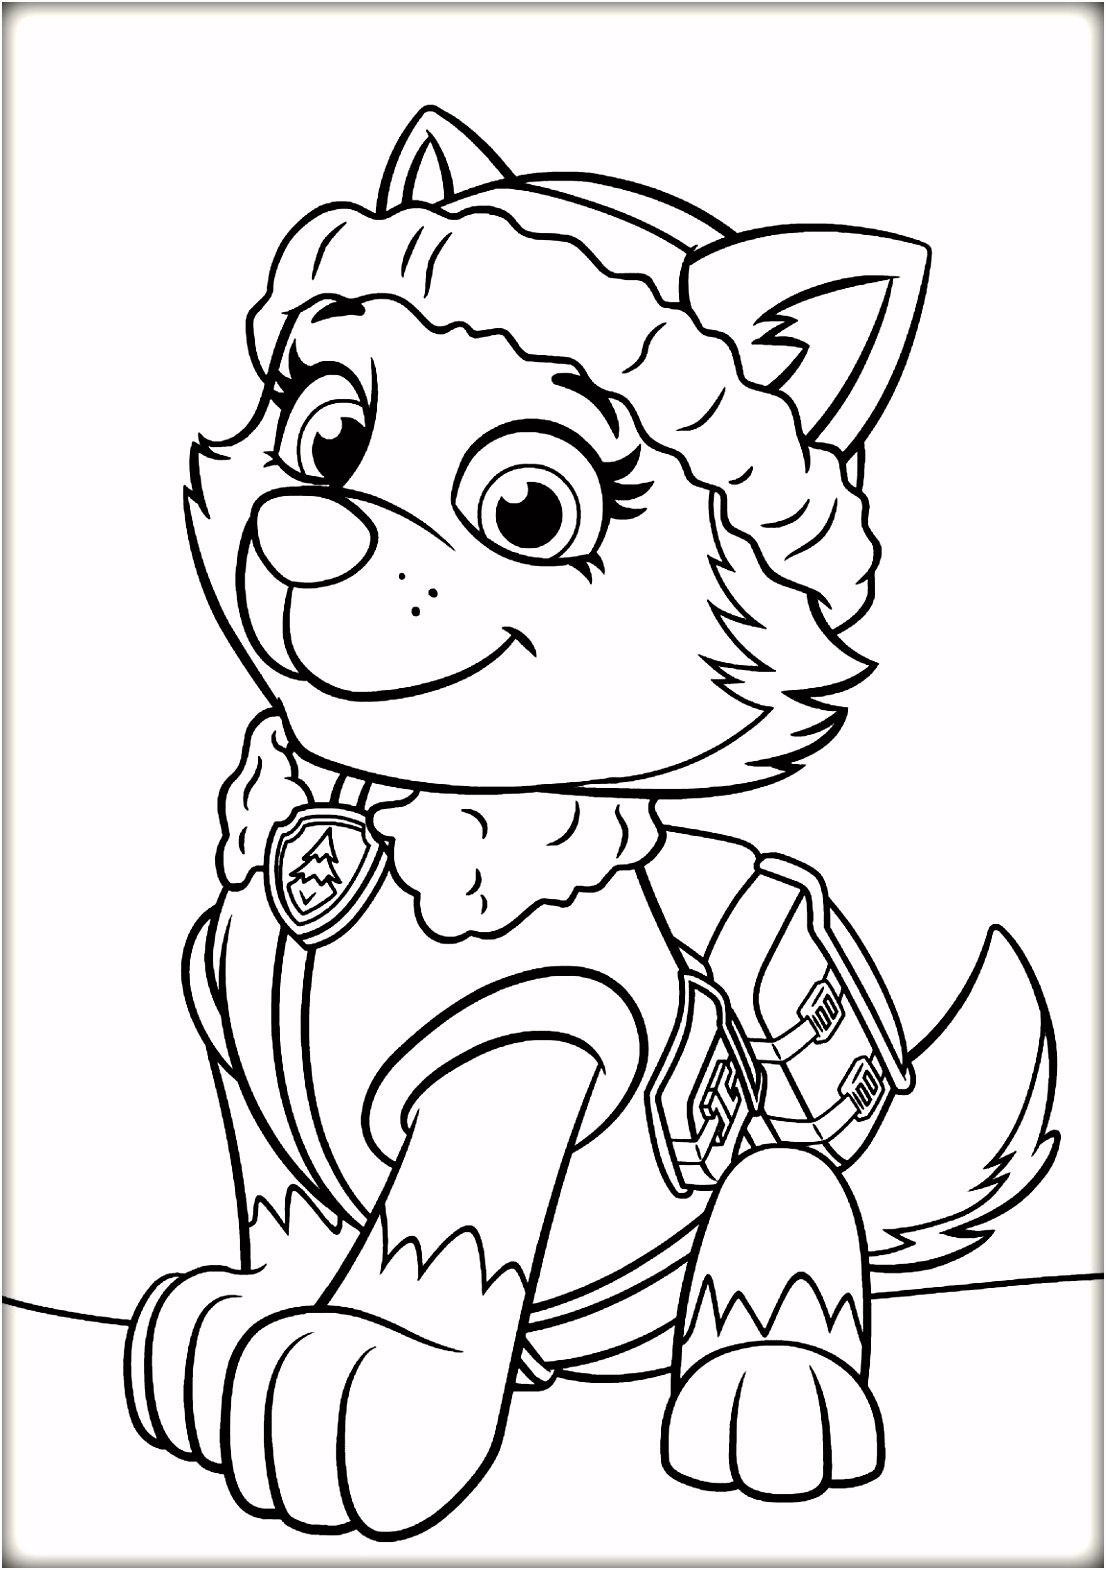 Paw patrol everest coloring pages Coloring Pages